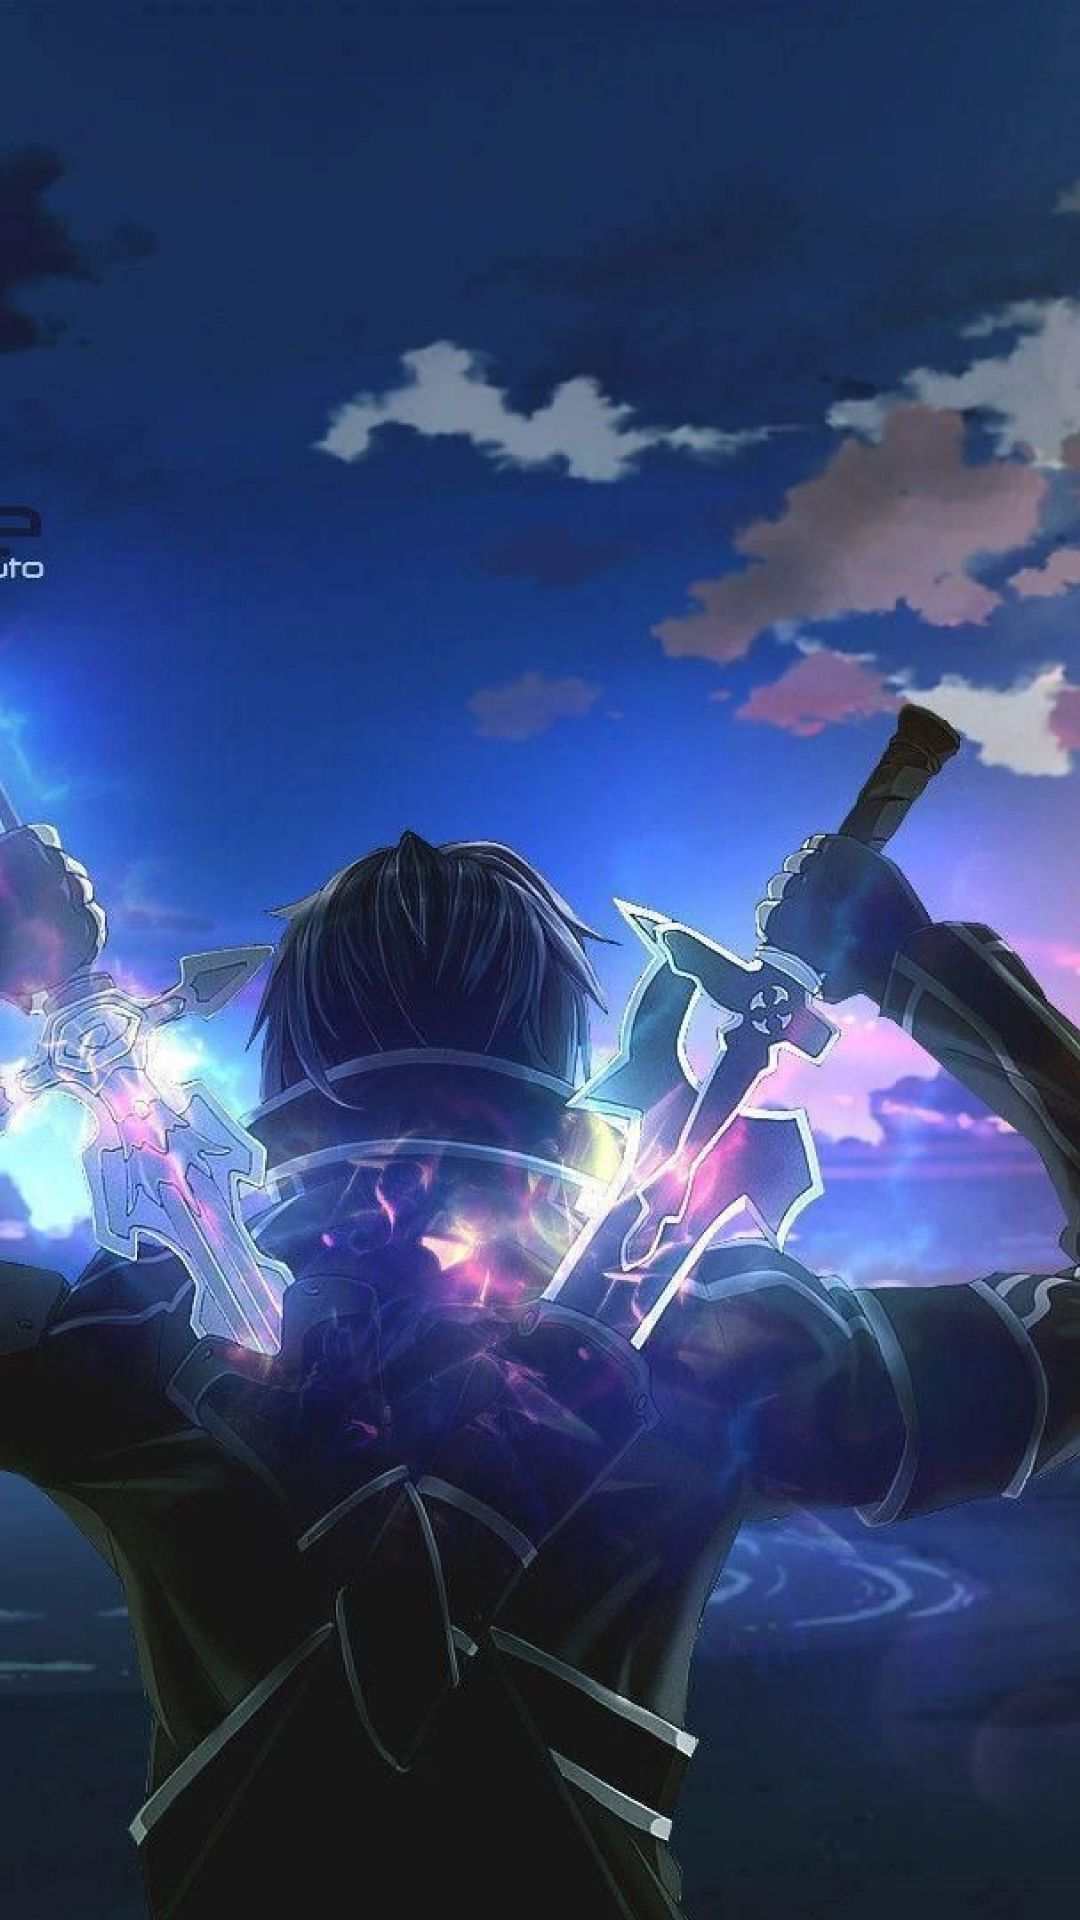 Epic Awesome Background Hd anime wallpapers, Anime